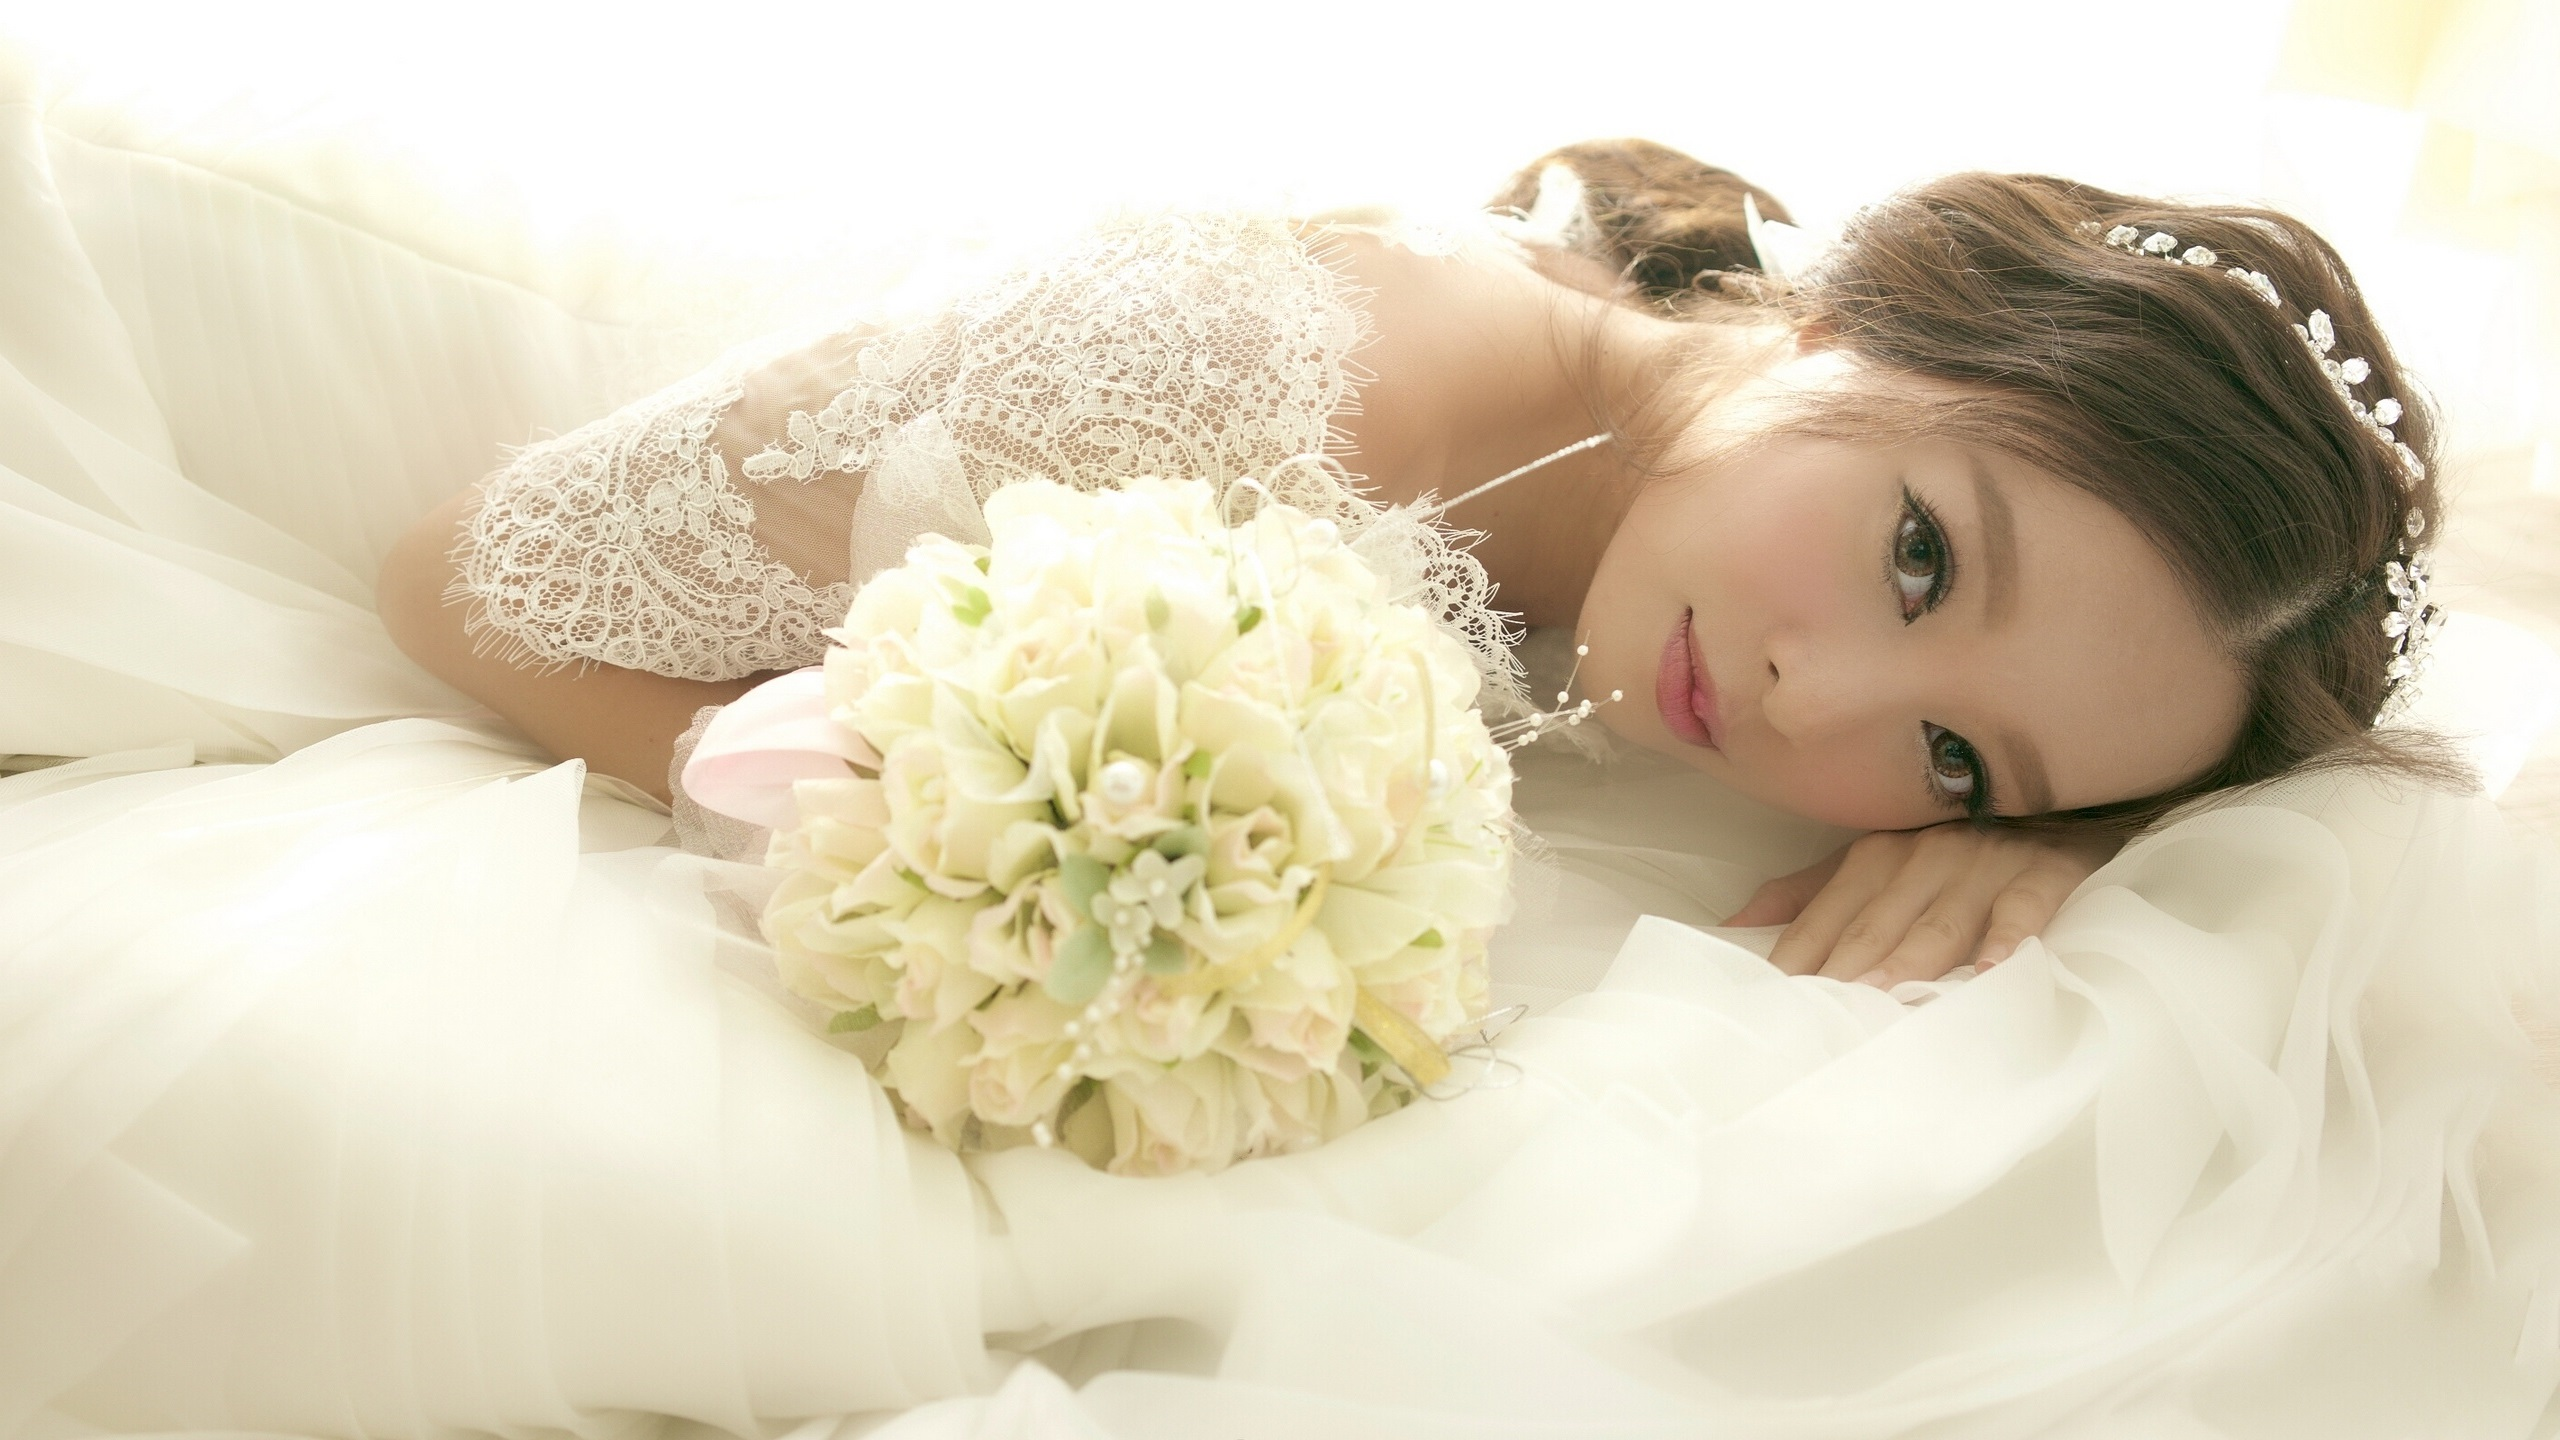 Cute Girly Wallpapers For Iphone 5s Wallpaper Asian Girl Bride Wedding Flowers 2560x1440